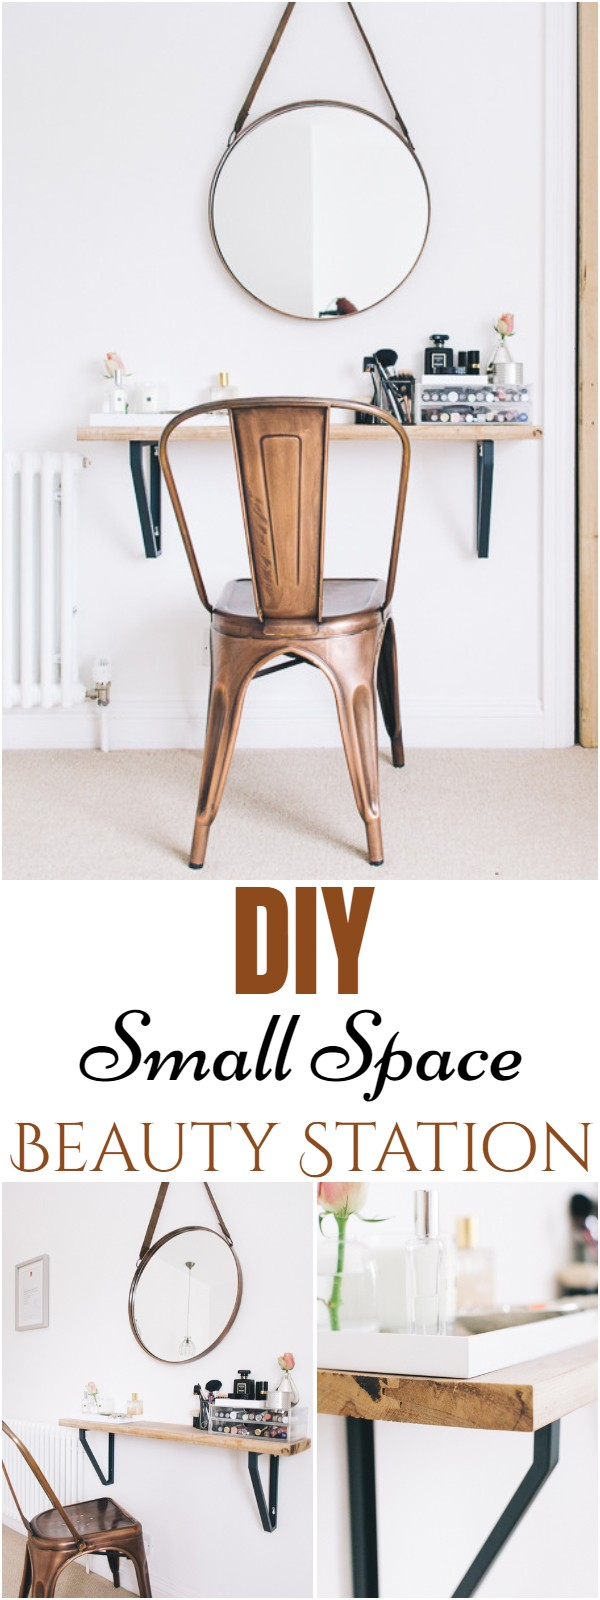 DIY Small Space Beauty Station